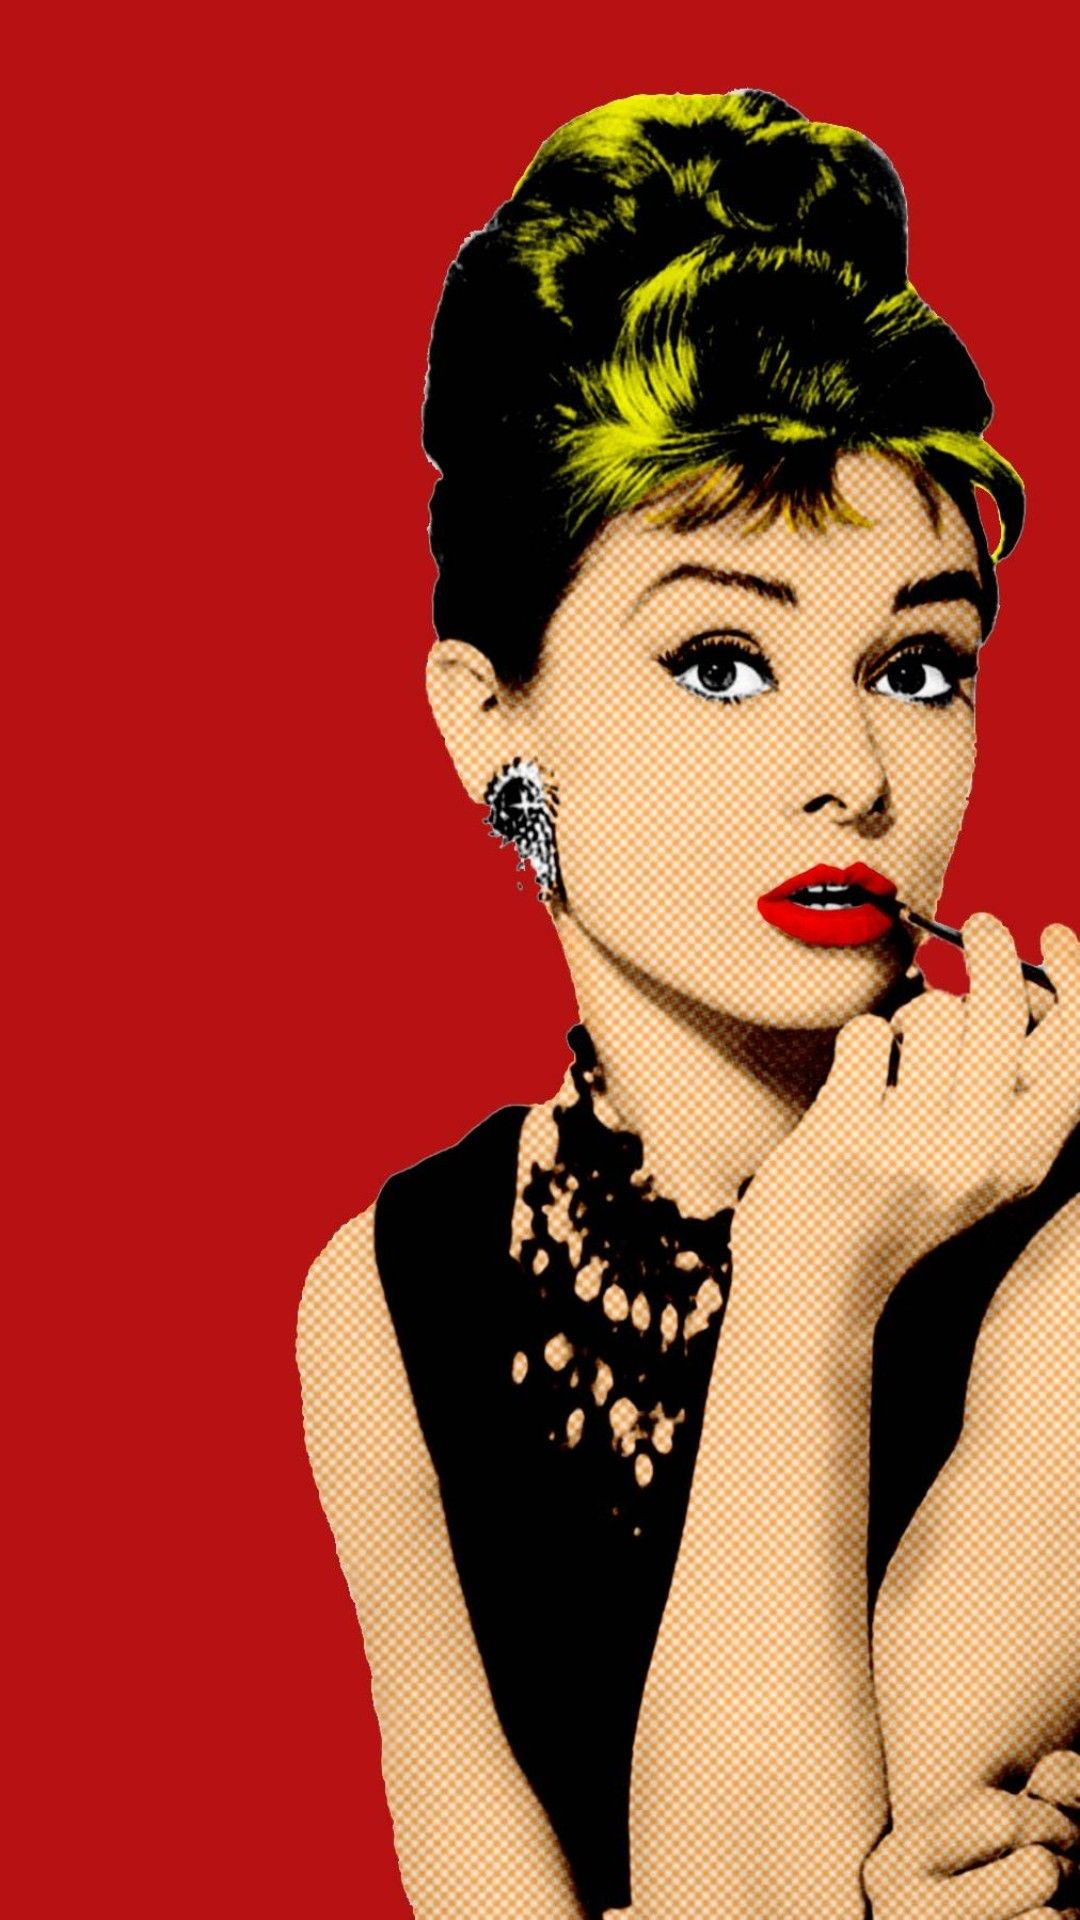 Pin By Byron Appleget 4 On Posters Pop Art Audrey Hepburn Audrey Hepburn Style